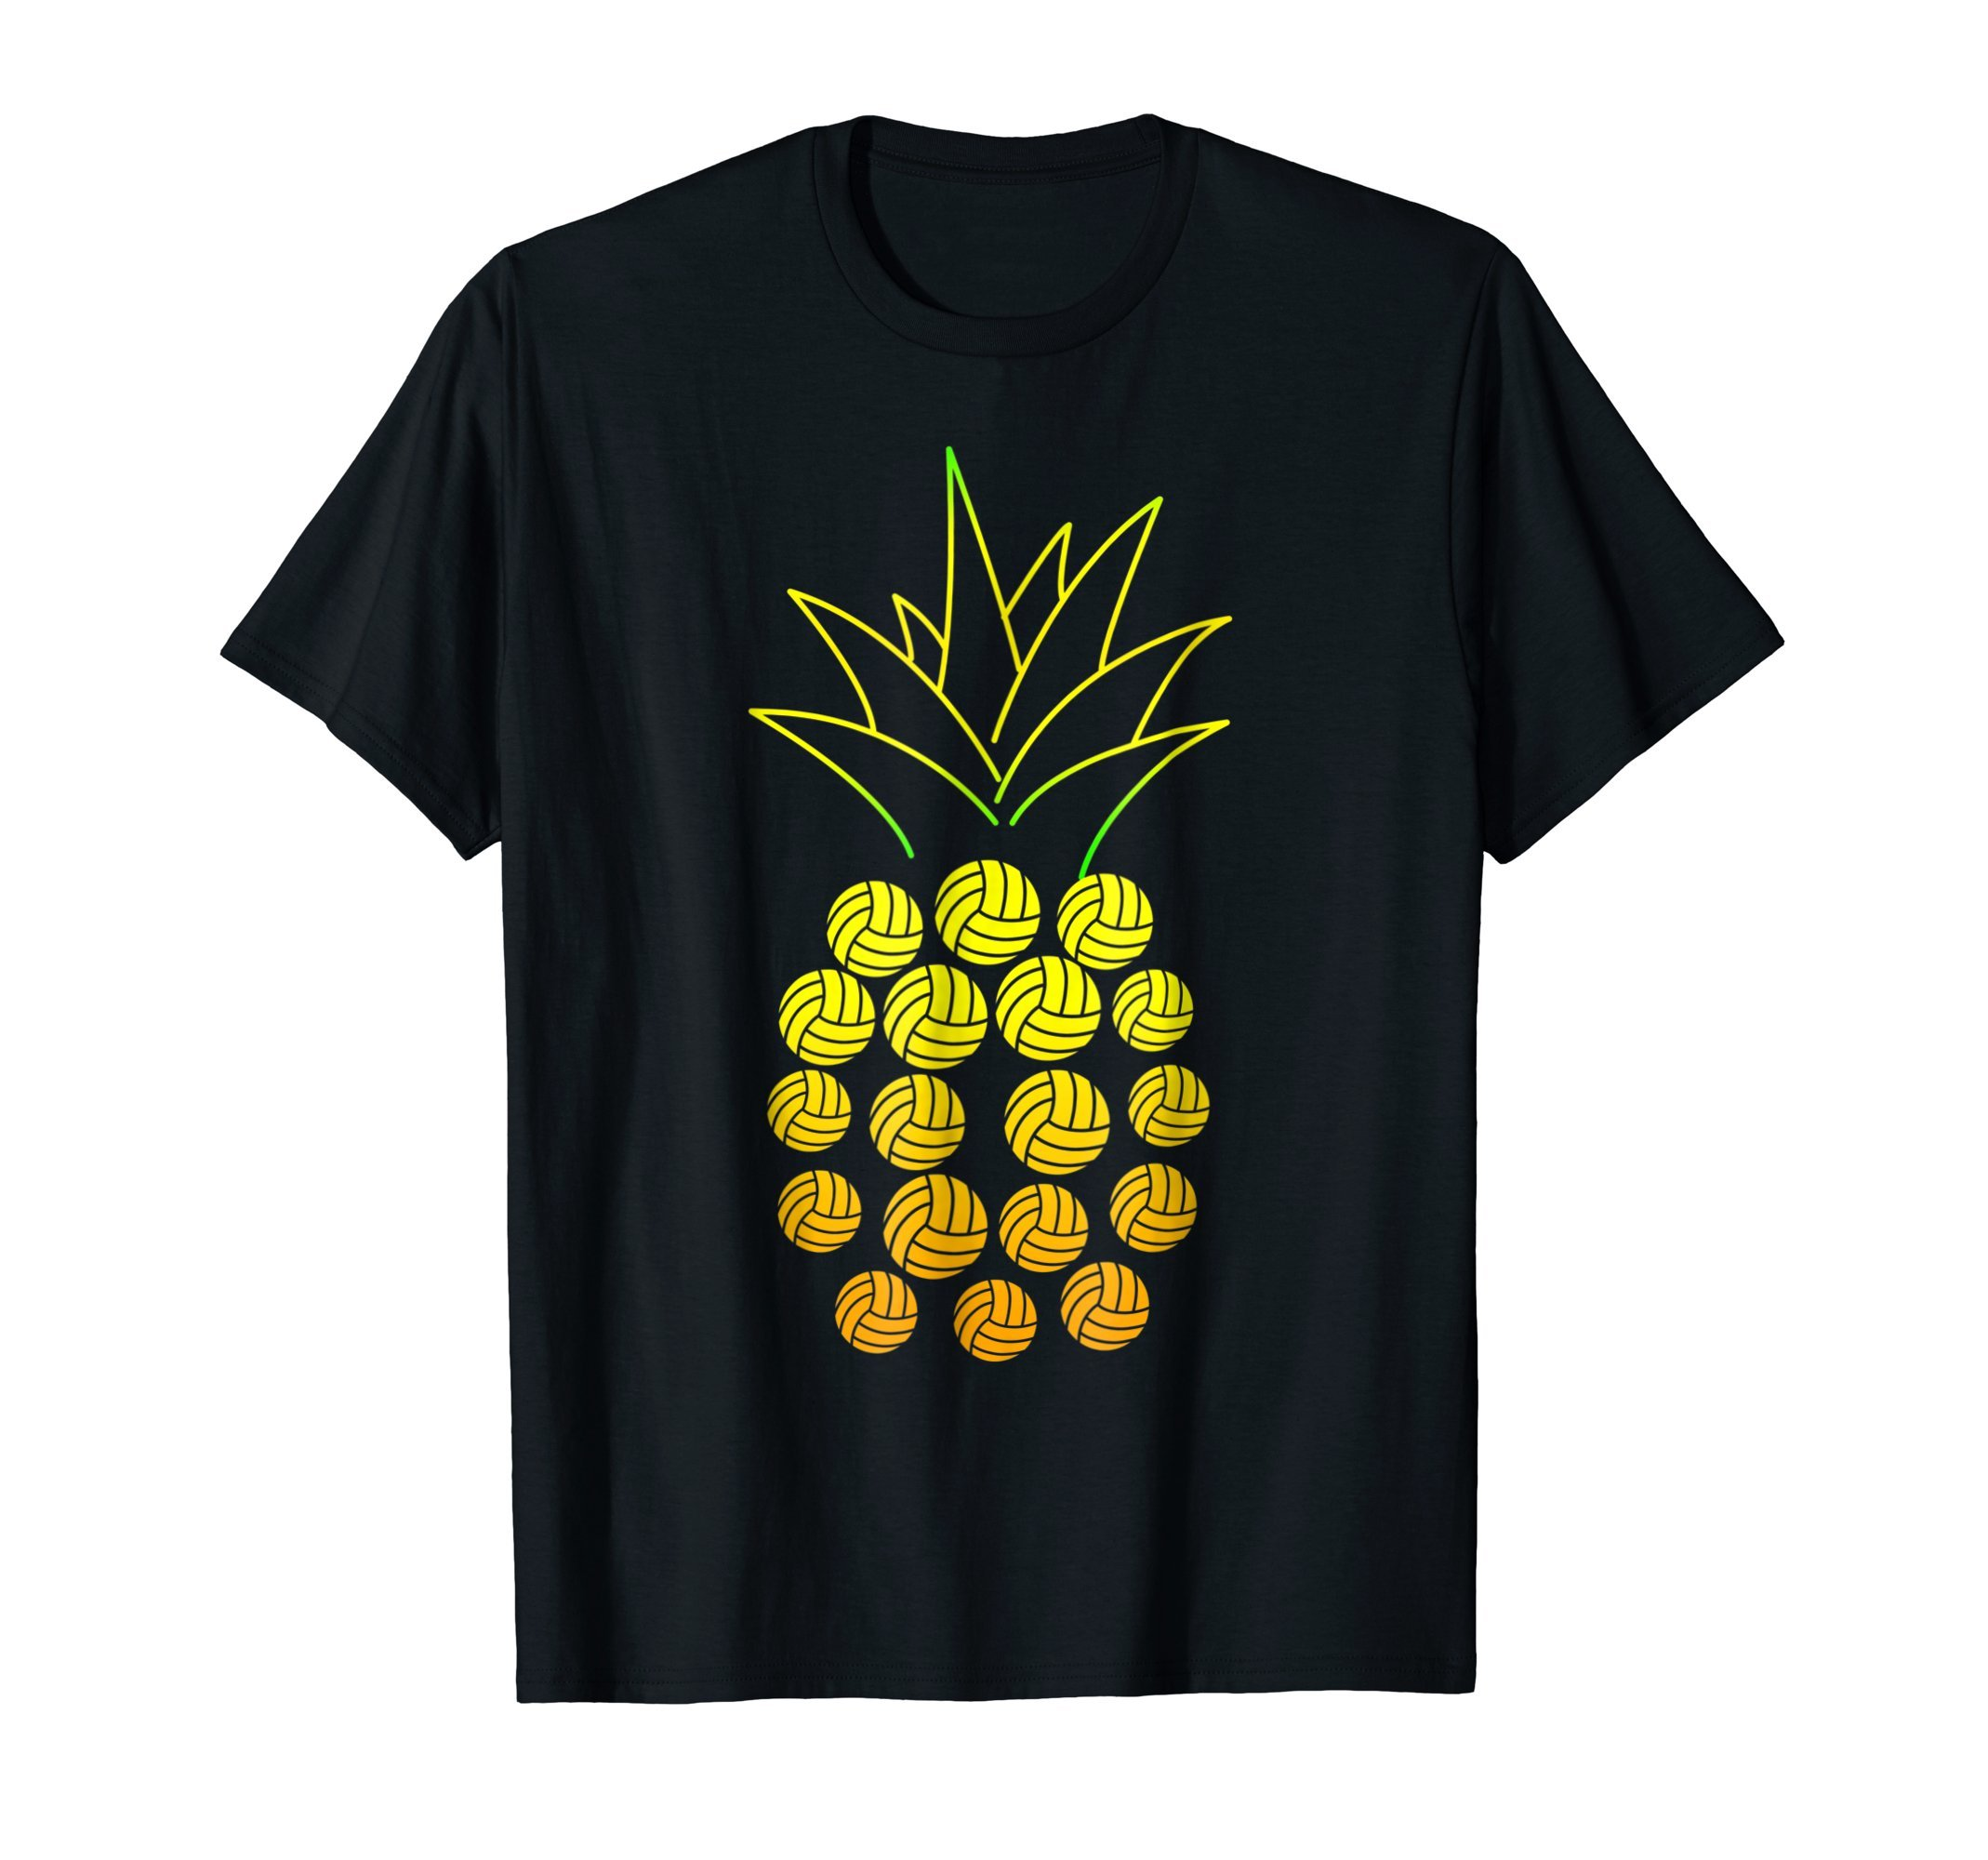 A Pineapple funny Volleyball T Shirt - funny gift for men